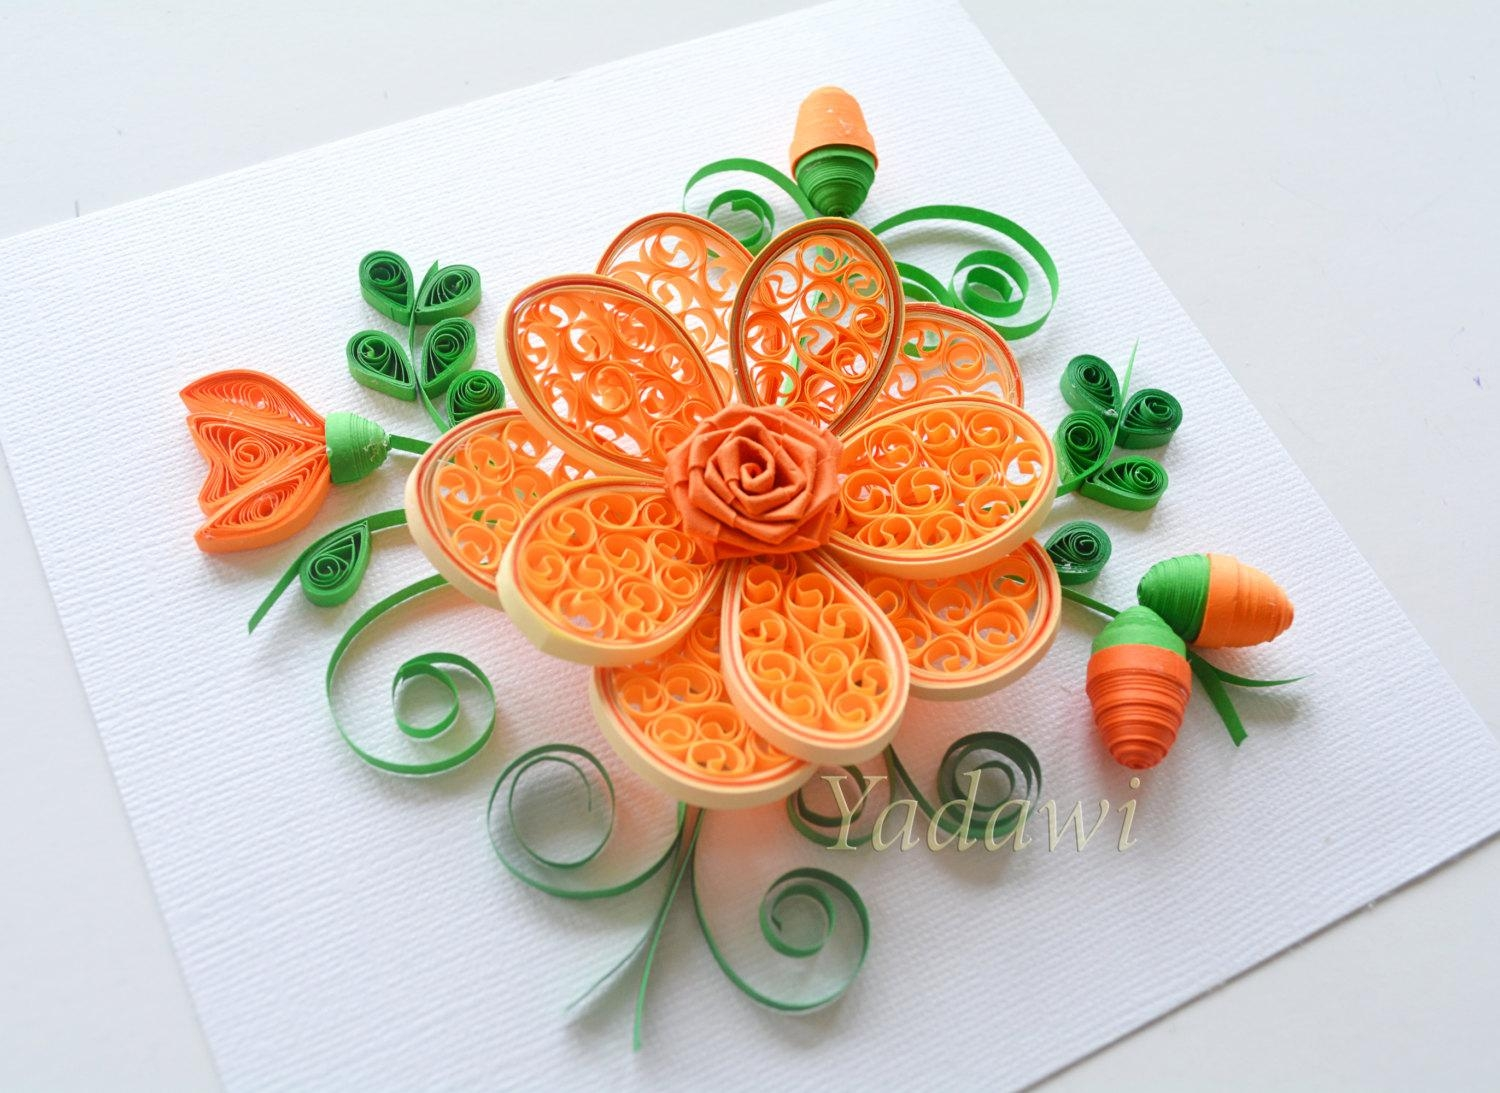 Quilled Paper Art Quilled Flower Paper Wall Art 3D Paper with regard to 3D Paper Wall Art